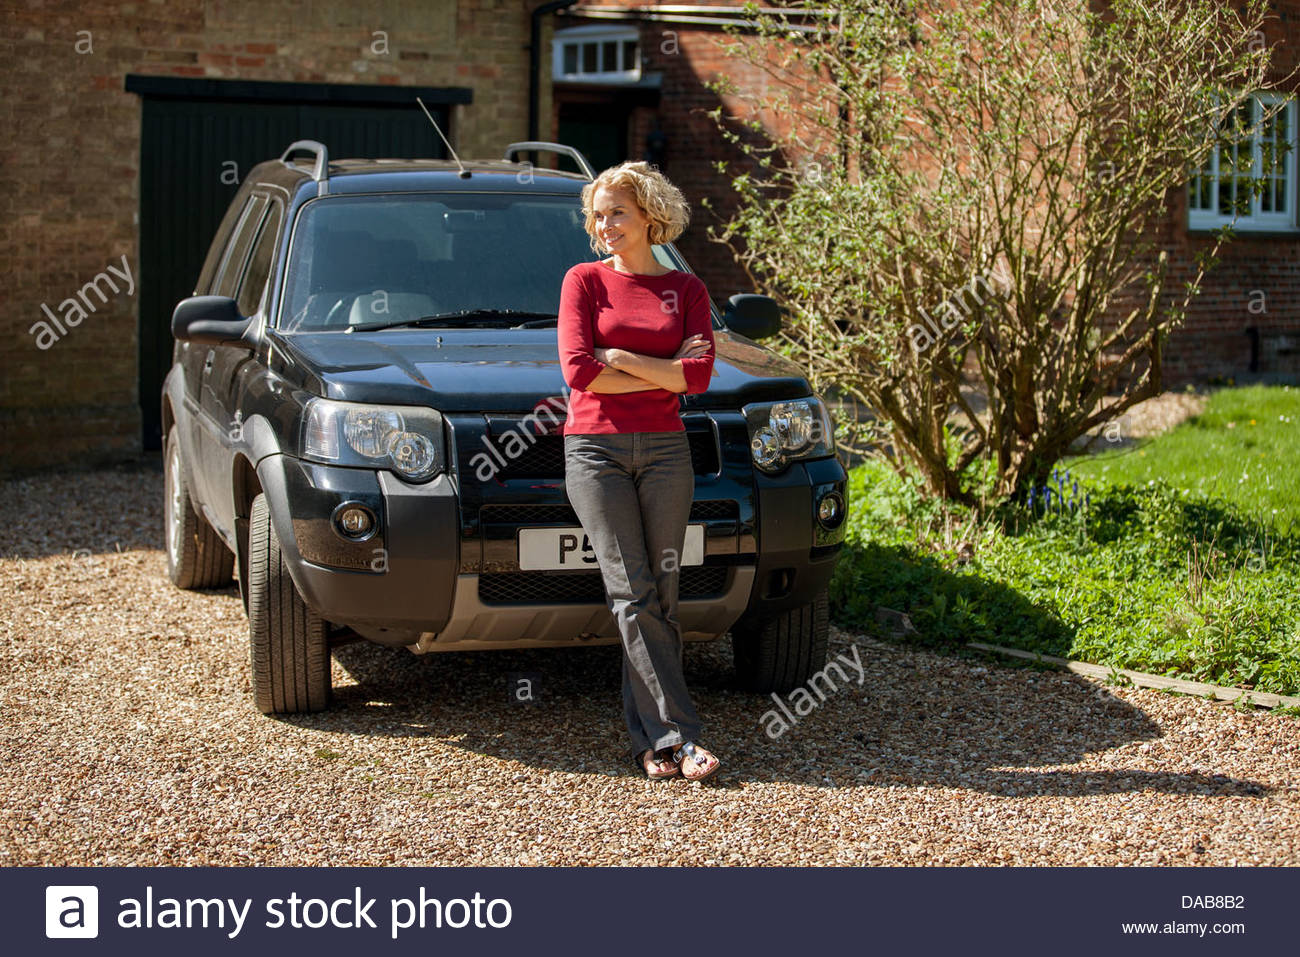 A mature woman standing in front of a car in the drive way of a house - Stock Image